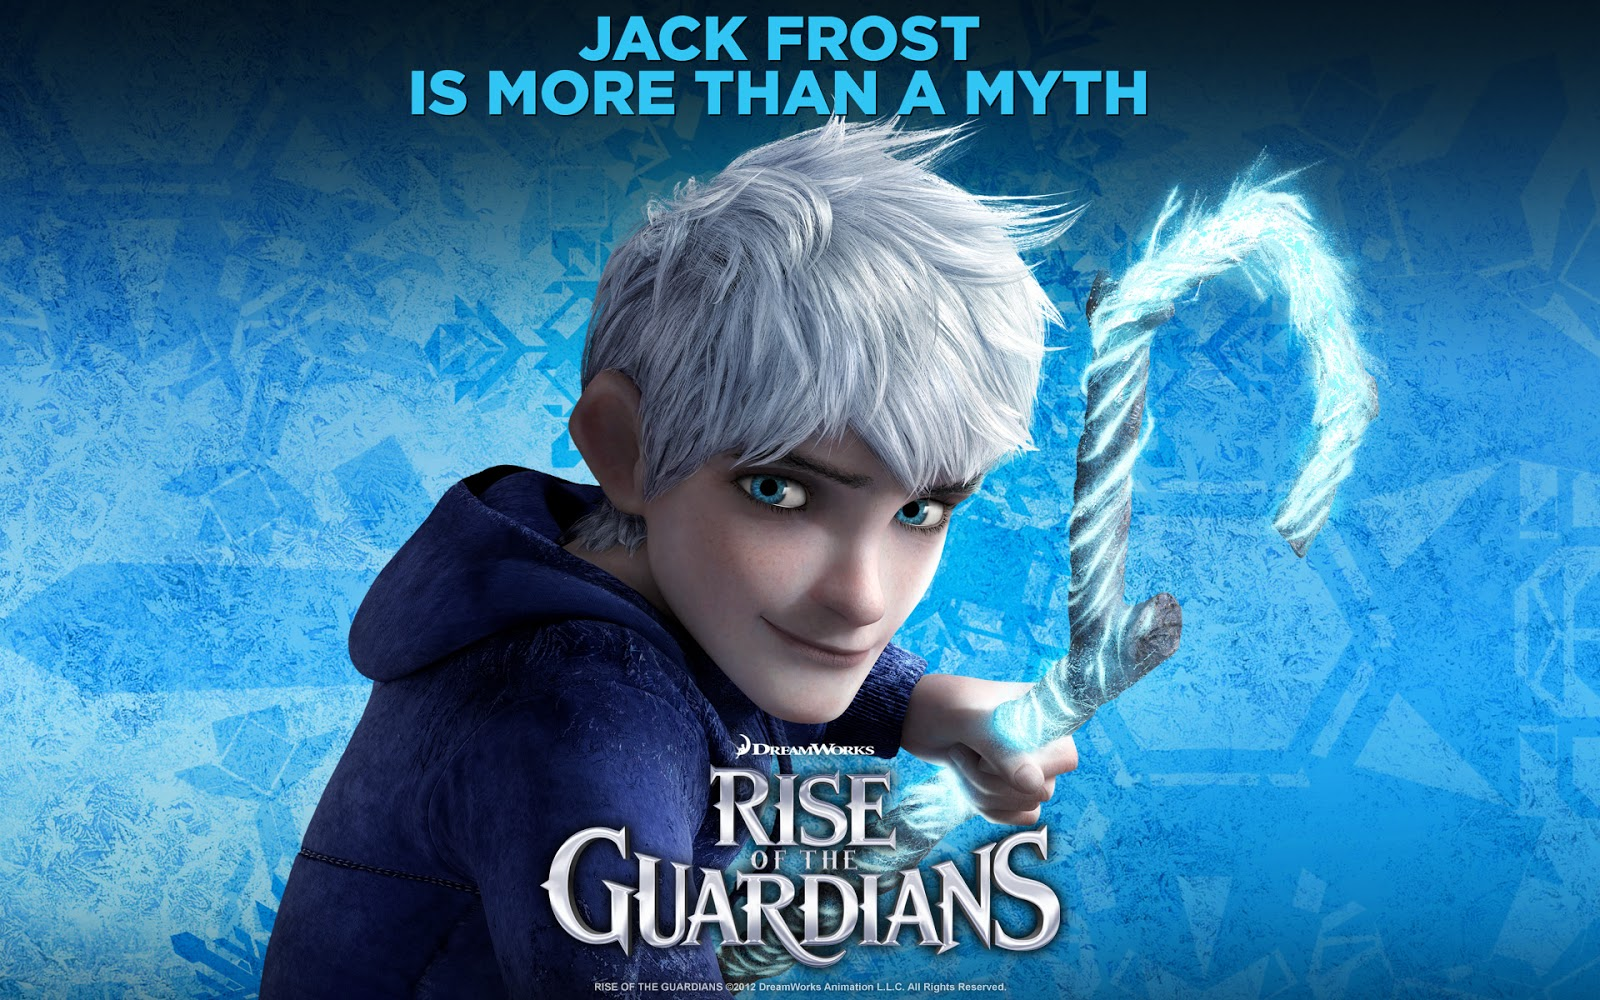 Jack Frost : Rise of the Guardians Movie Wallpaper